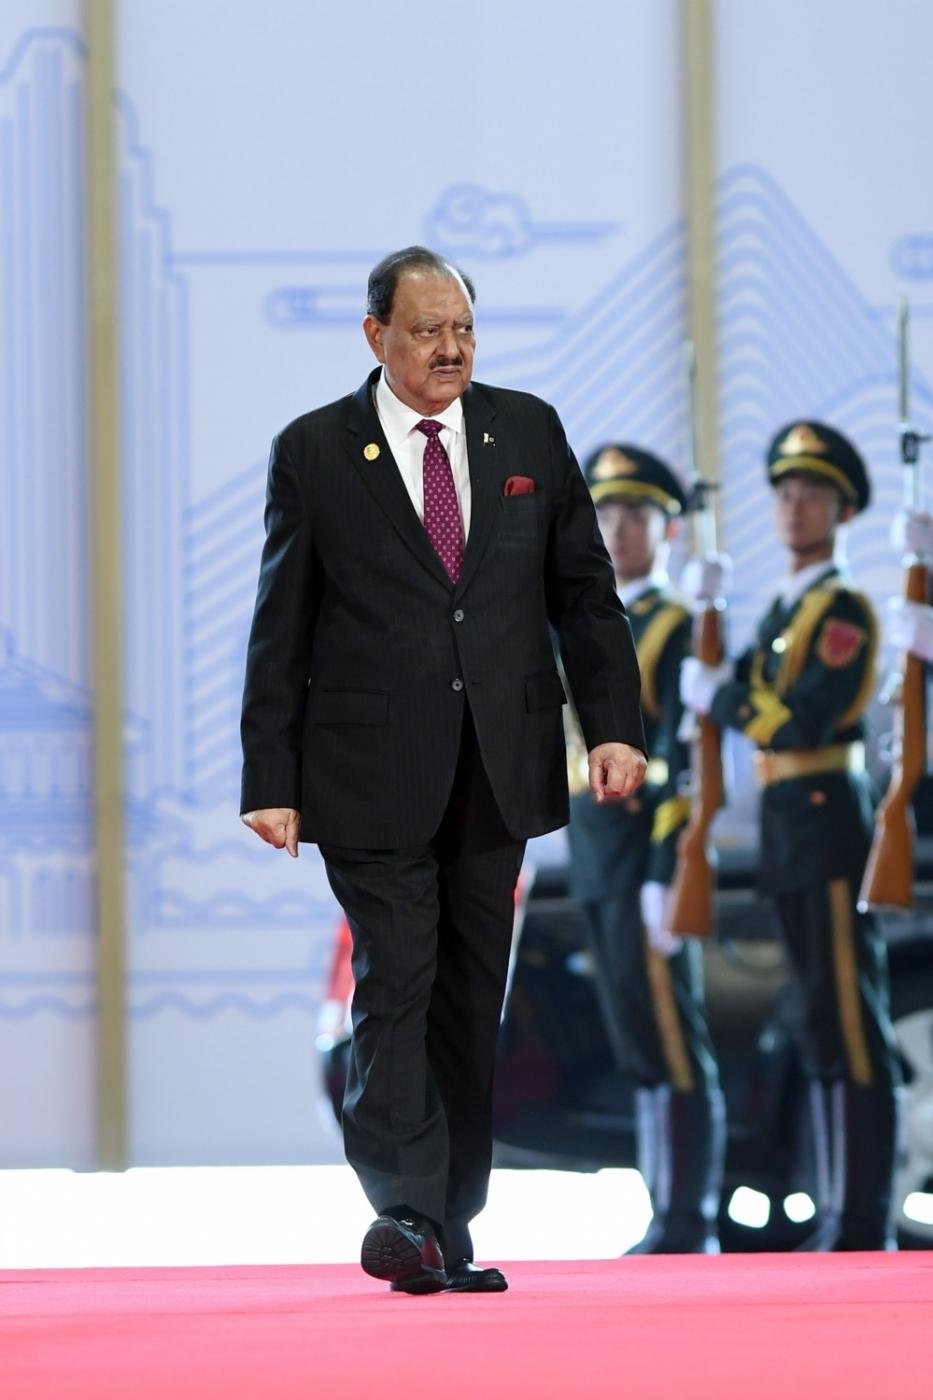 QINGDAO, June 10, 2018(Xinhua) -- Pakistani President Mamnoon Hussain arrives for a session of the 18th Shanghai Cooperation Organization (SCO) summit in Qingdao, east China's Shandong Province, June 10, 2018. The SCO adheres to the Shanghai Spirit which features mutual trust, mutual benefit, equality, consultation, respect for diverse civilizations and pursuit of common development. (Xinhua/Jin Liangkuai/IANS) by .